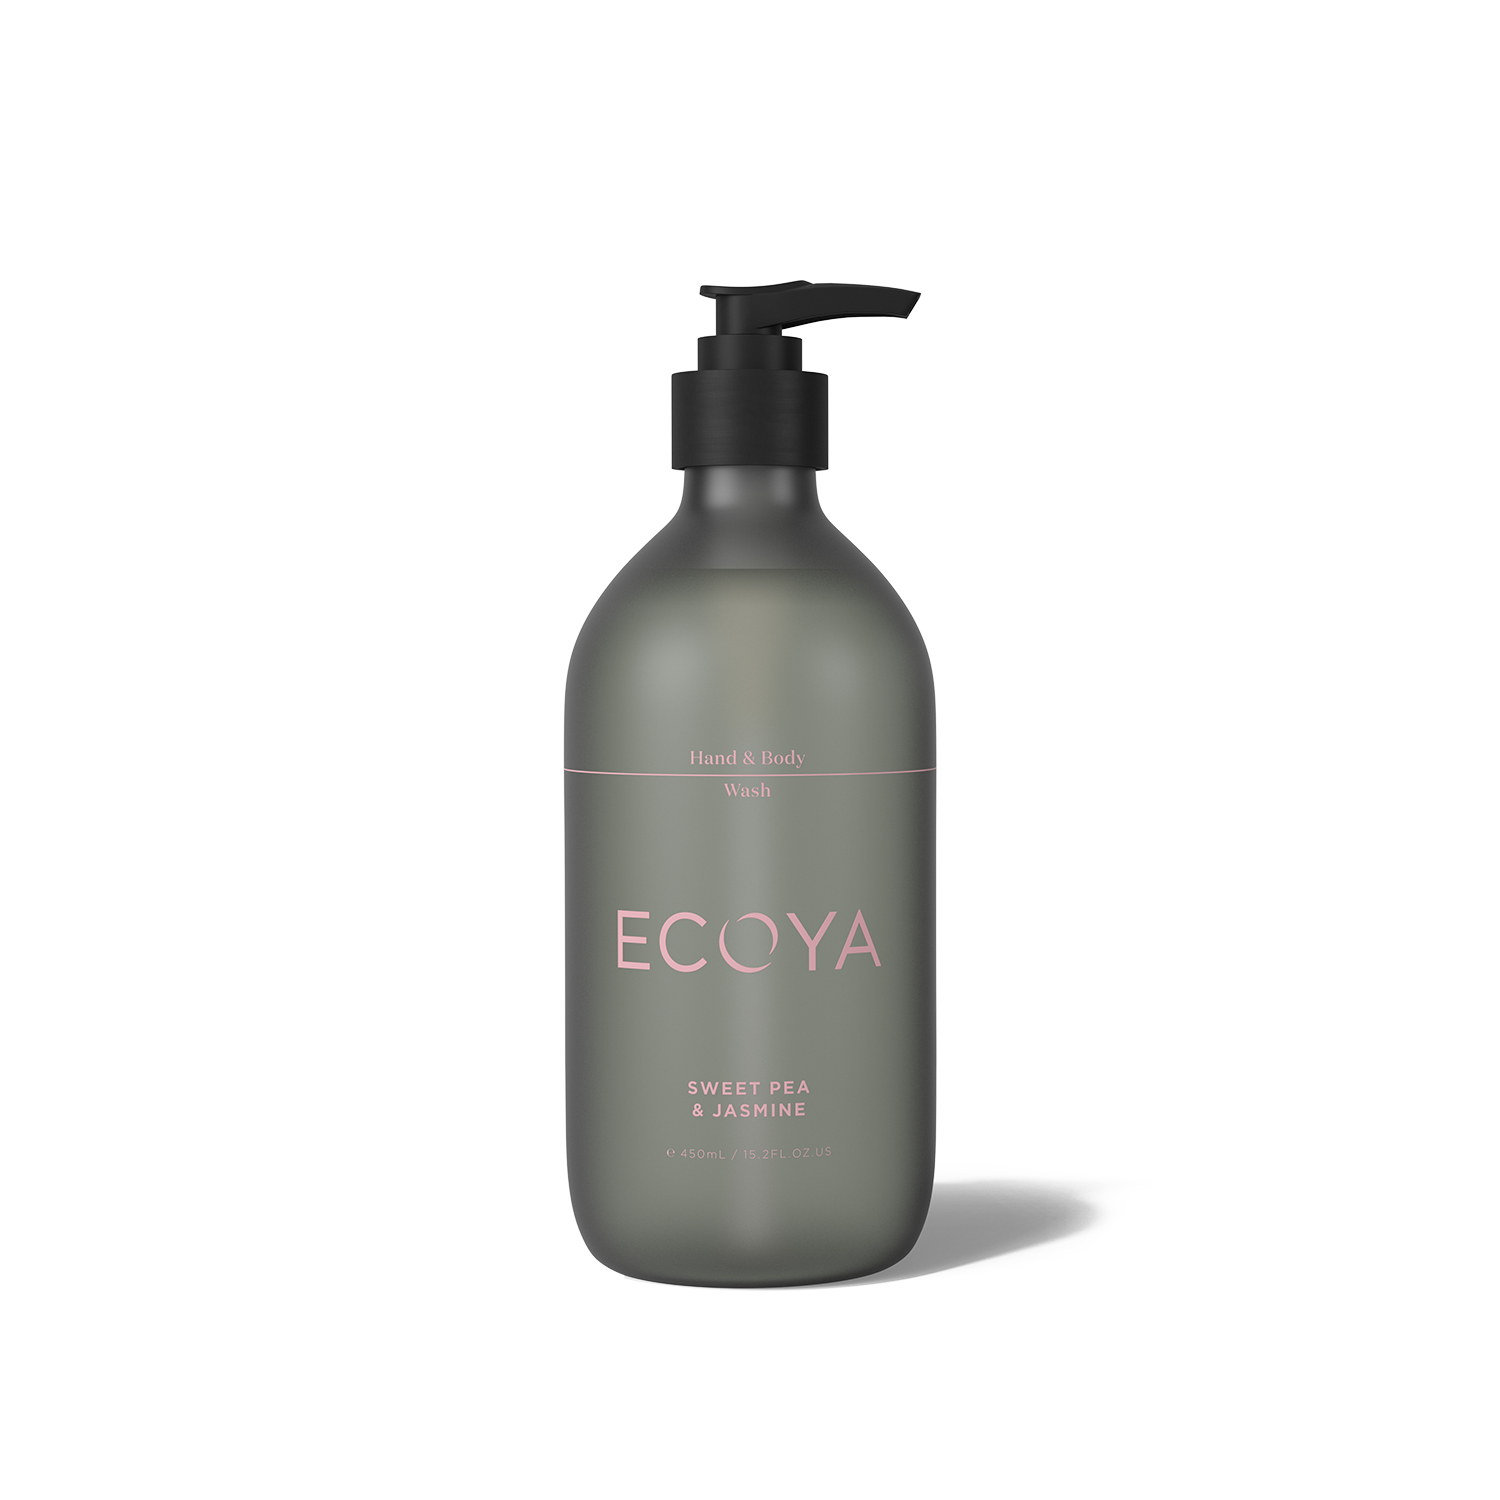 Ecoya Sweet Pea and Jasmine Hand and Body Wash 15.8oz (450ml)